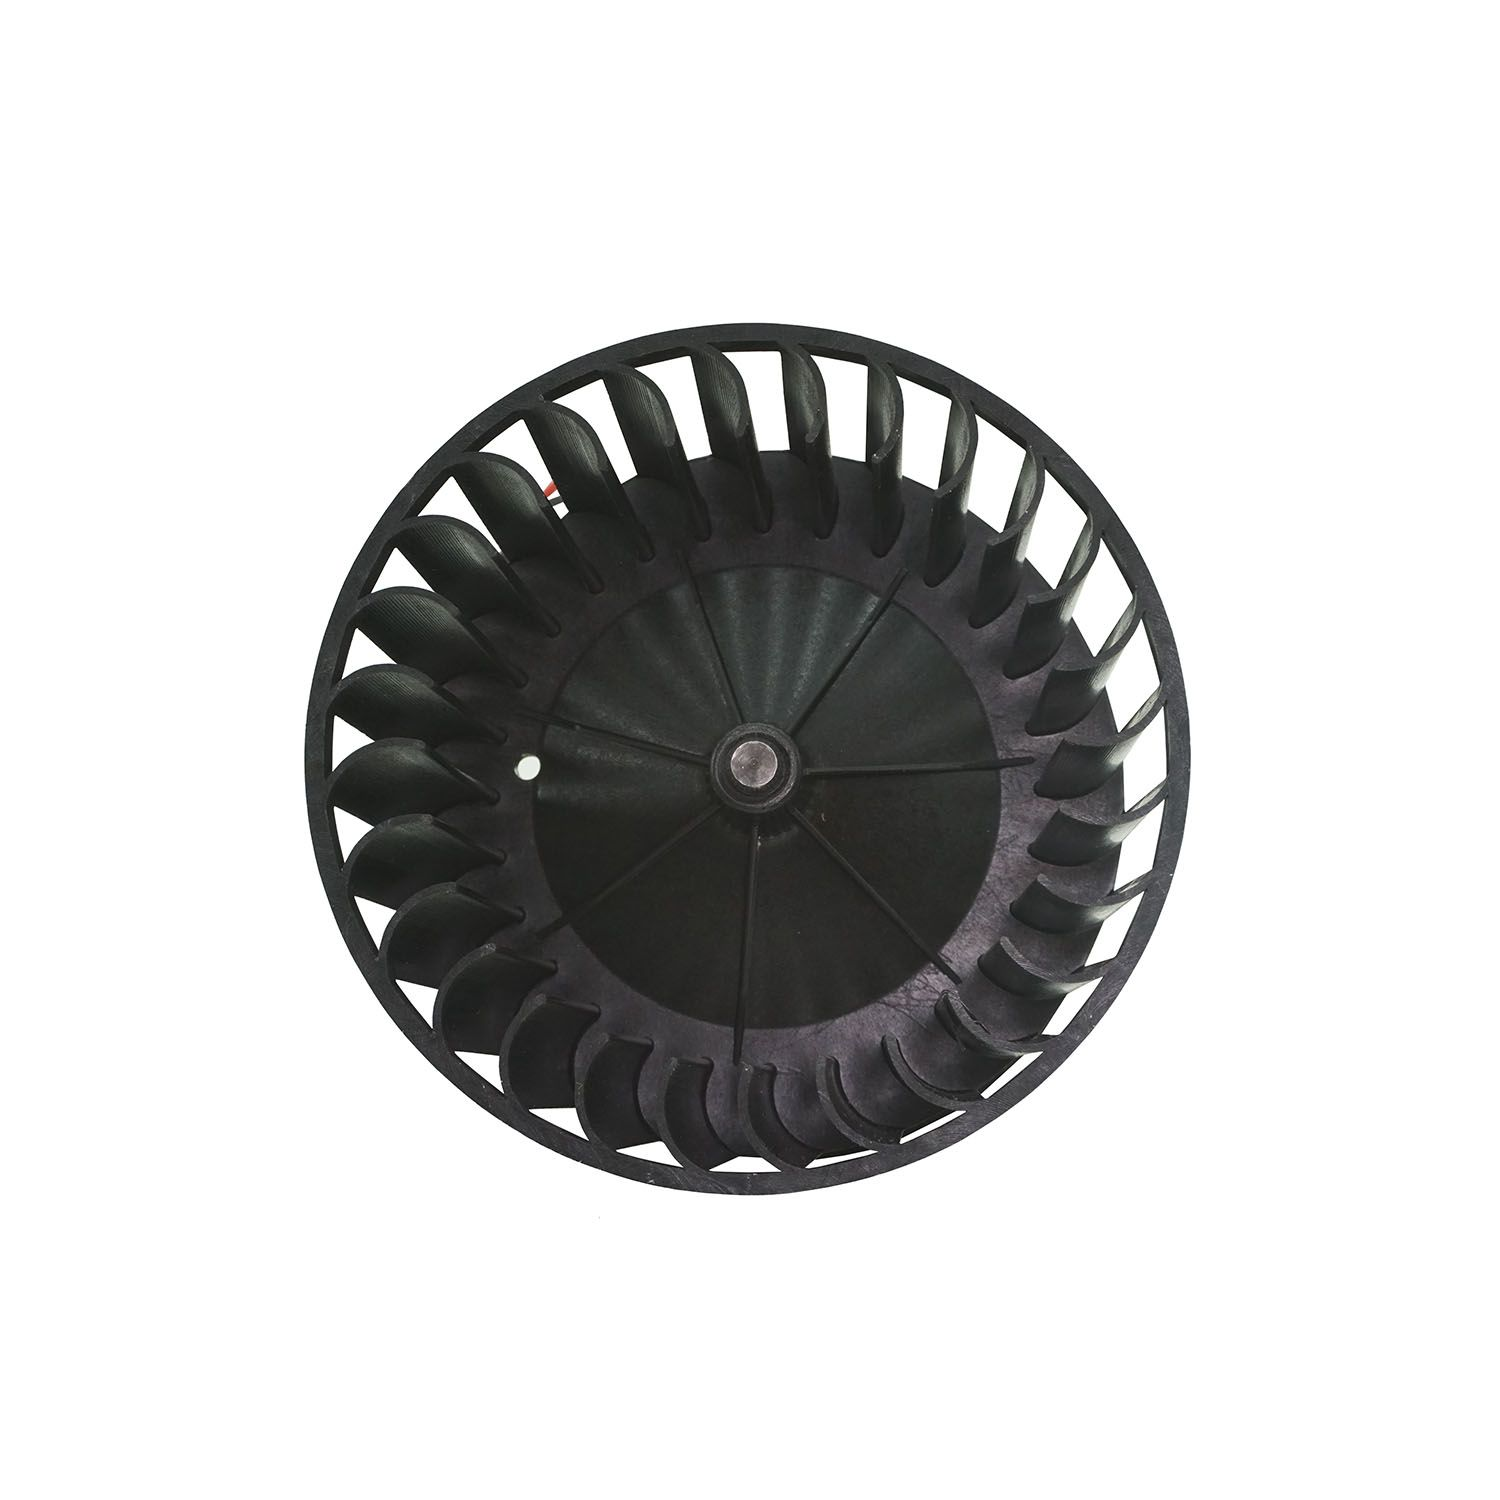 Ventilador Interno do Onibus Mercedes Benz O370 R RS E RSD 371R RS RSD 24V